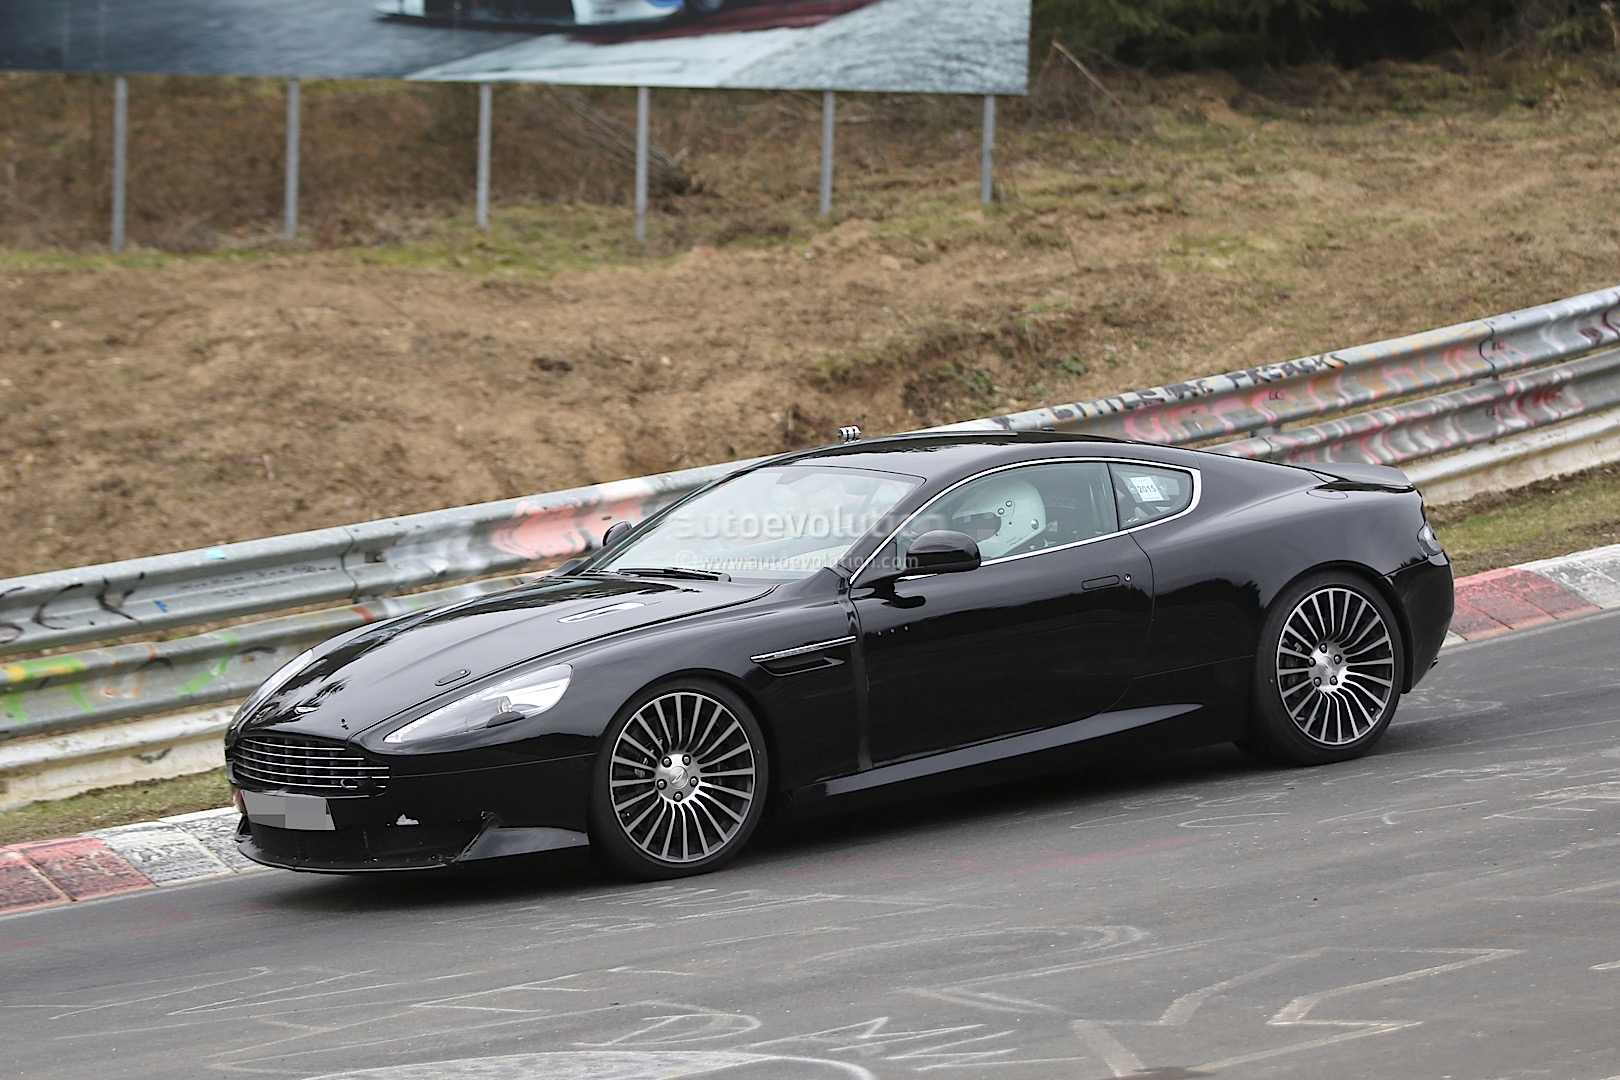 2016 aston martin db9 spied it s powered by an atmospheric v12. Black Bedroom Furniture Sets. Home Design Ideas